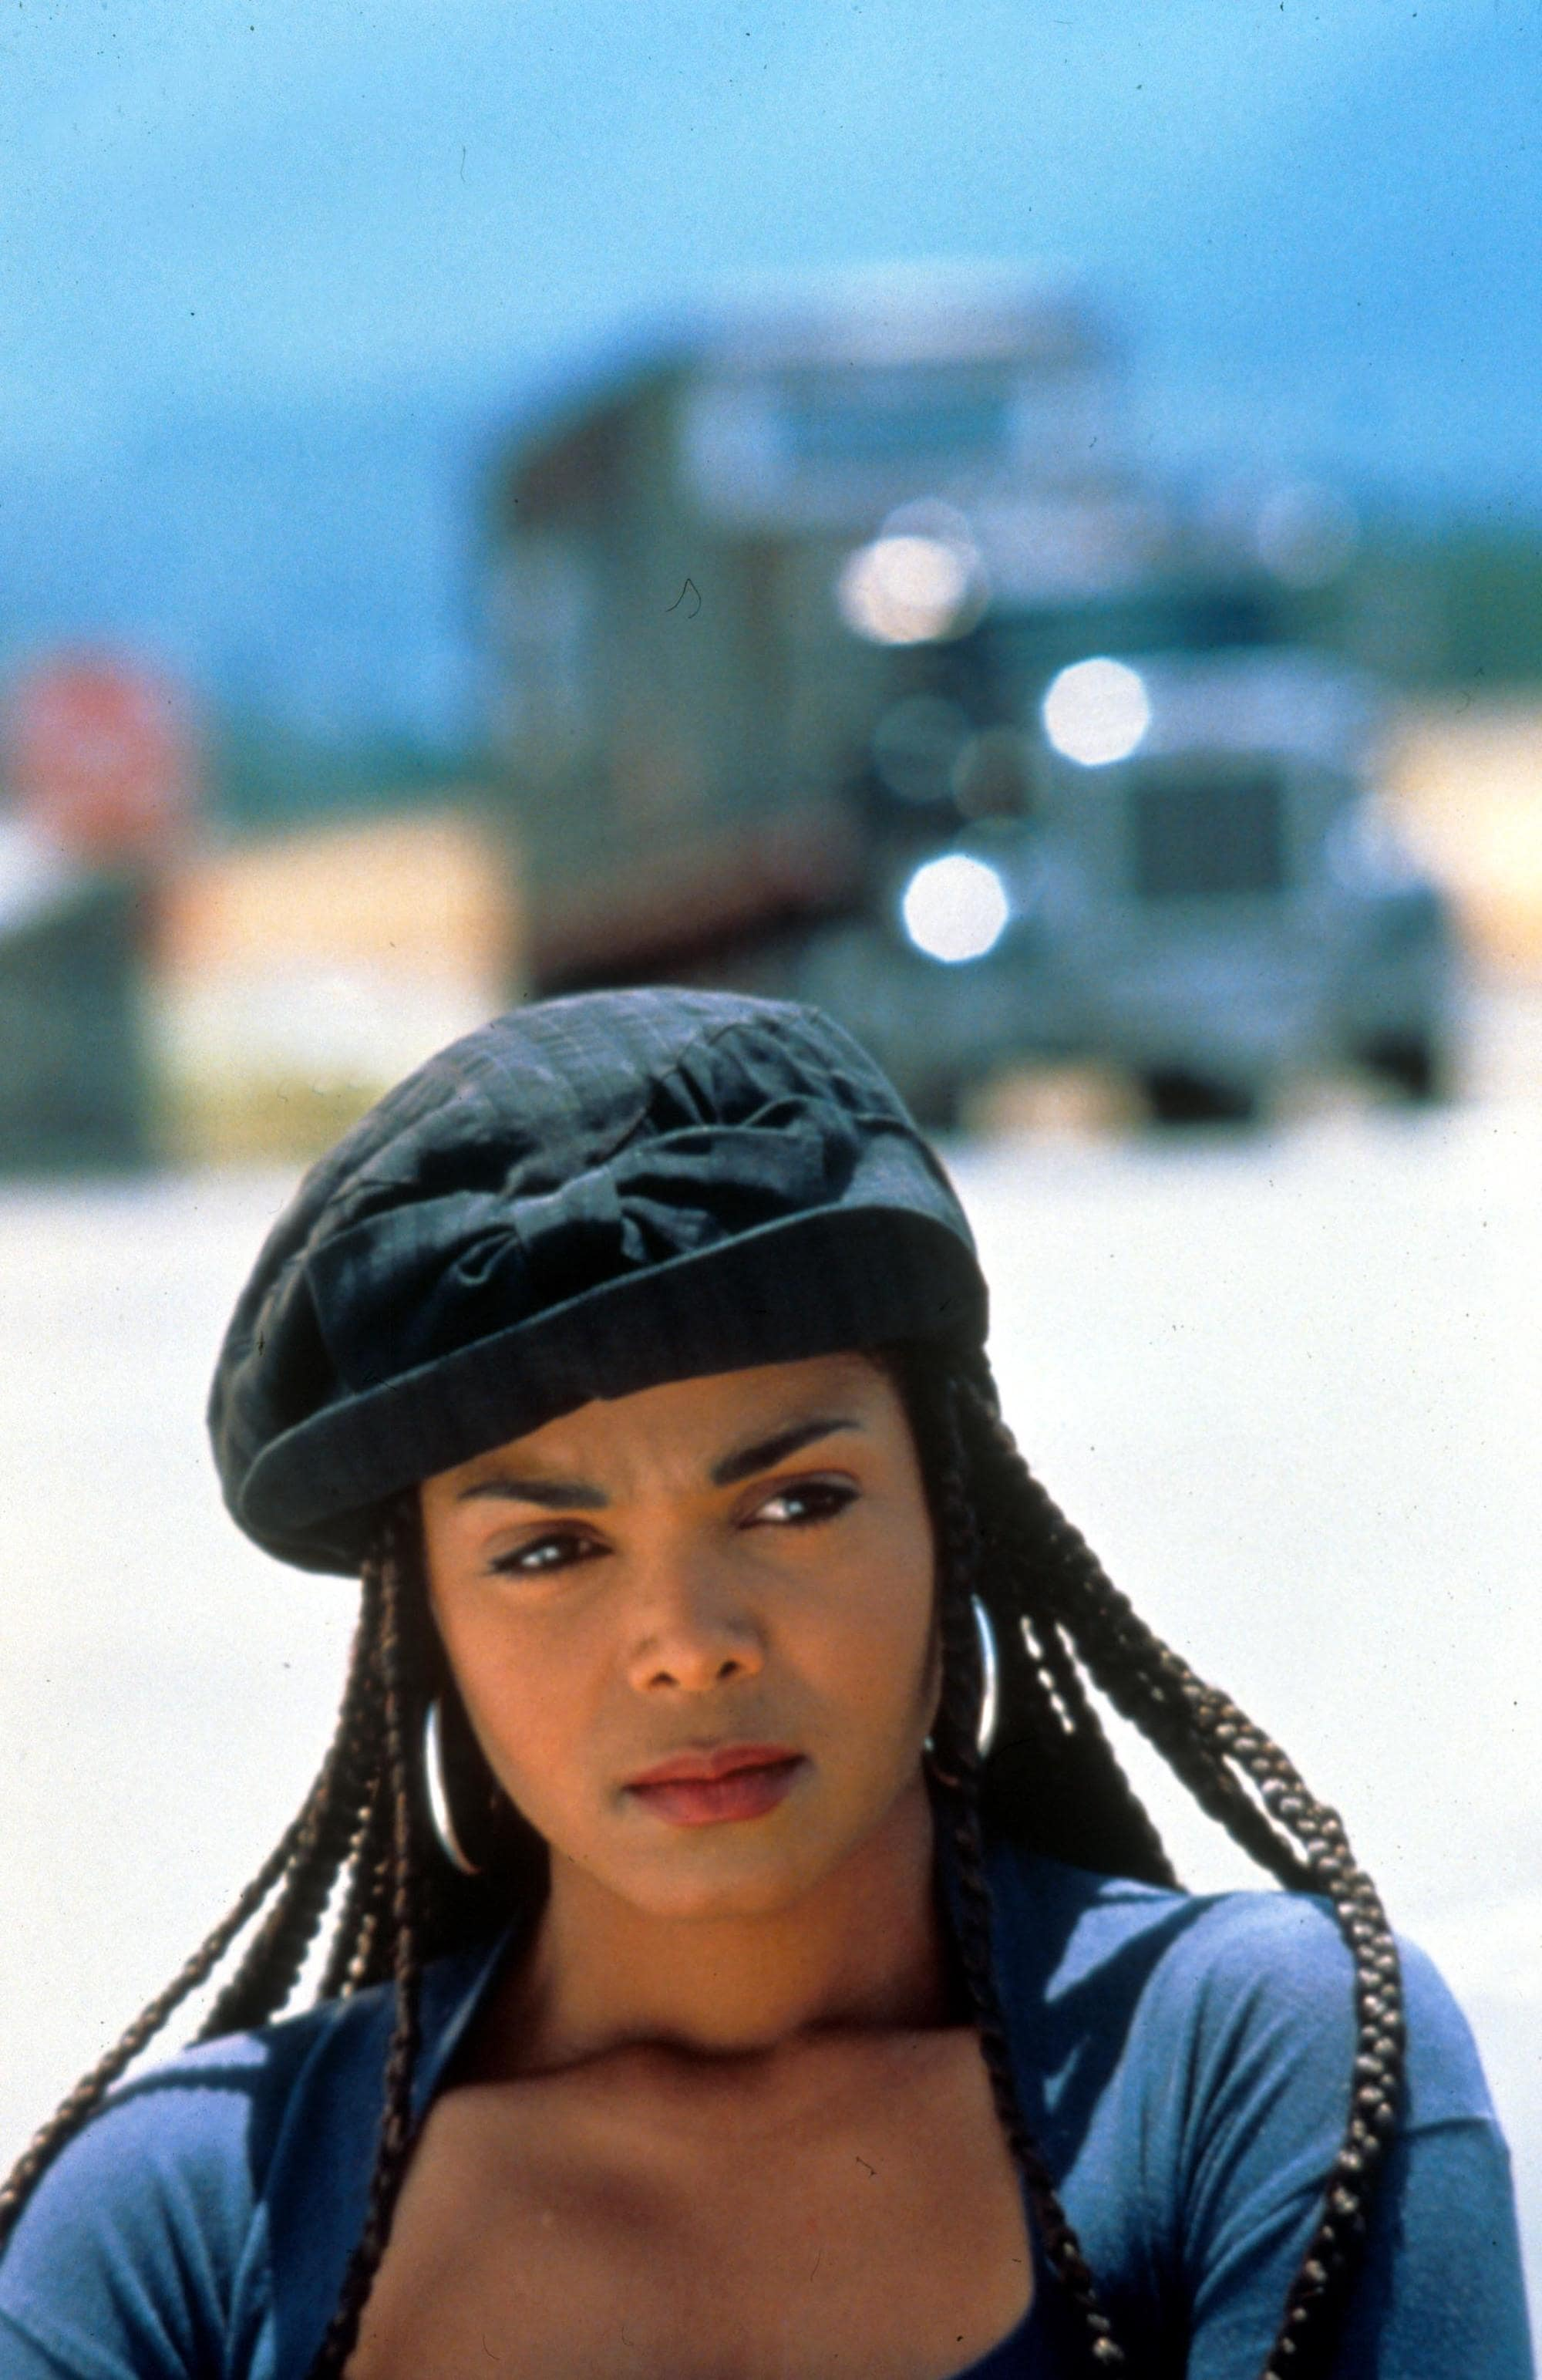 90s hairstyles: Janet Jackson box braids from Poetic Justice movie wearing a black beret and hoop earrings